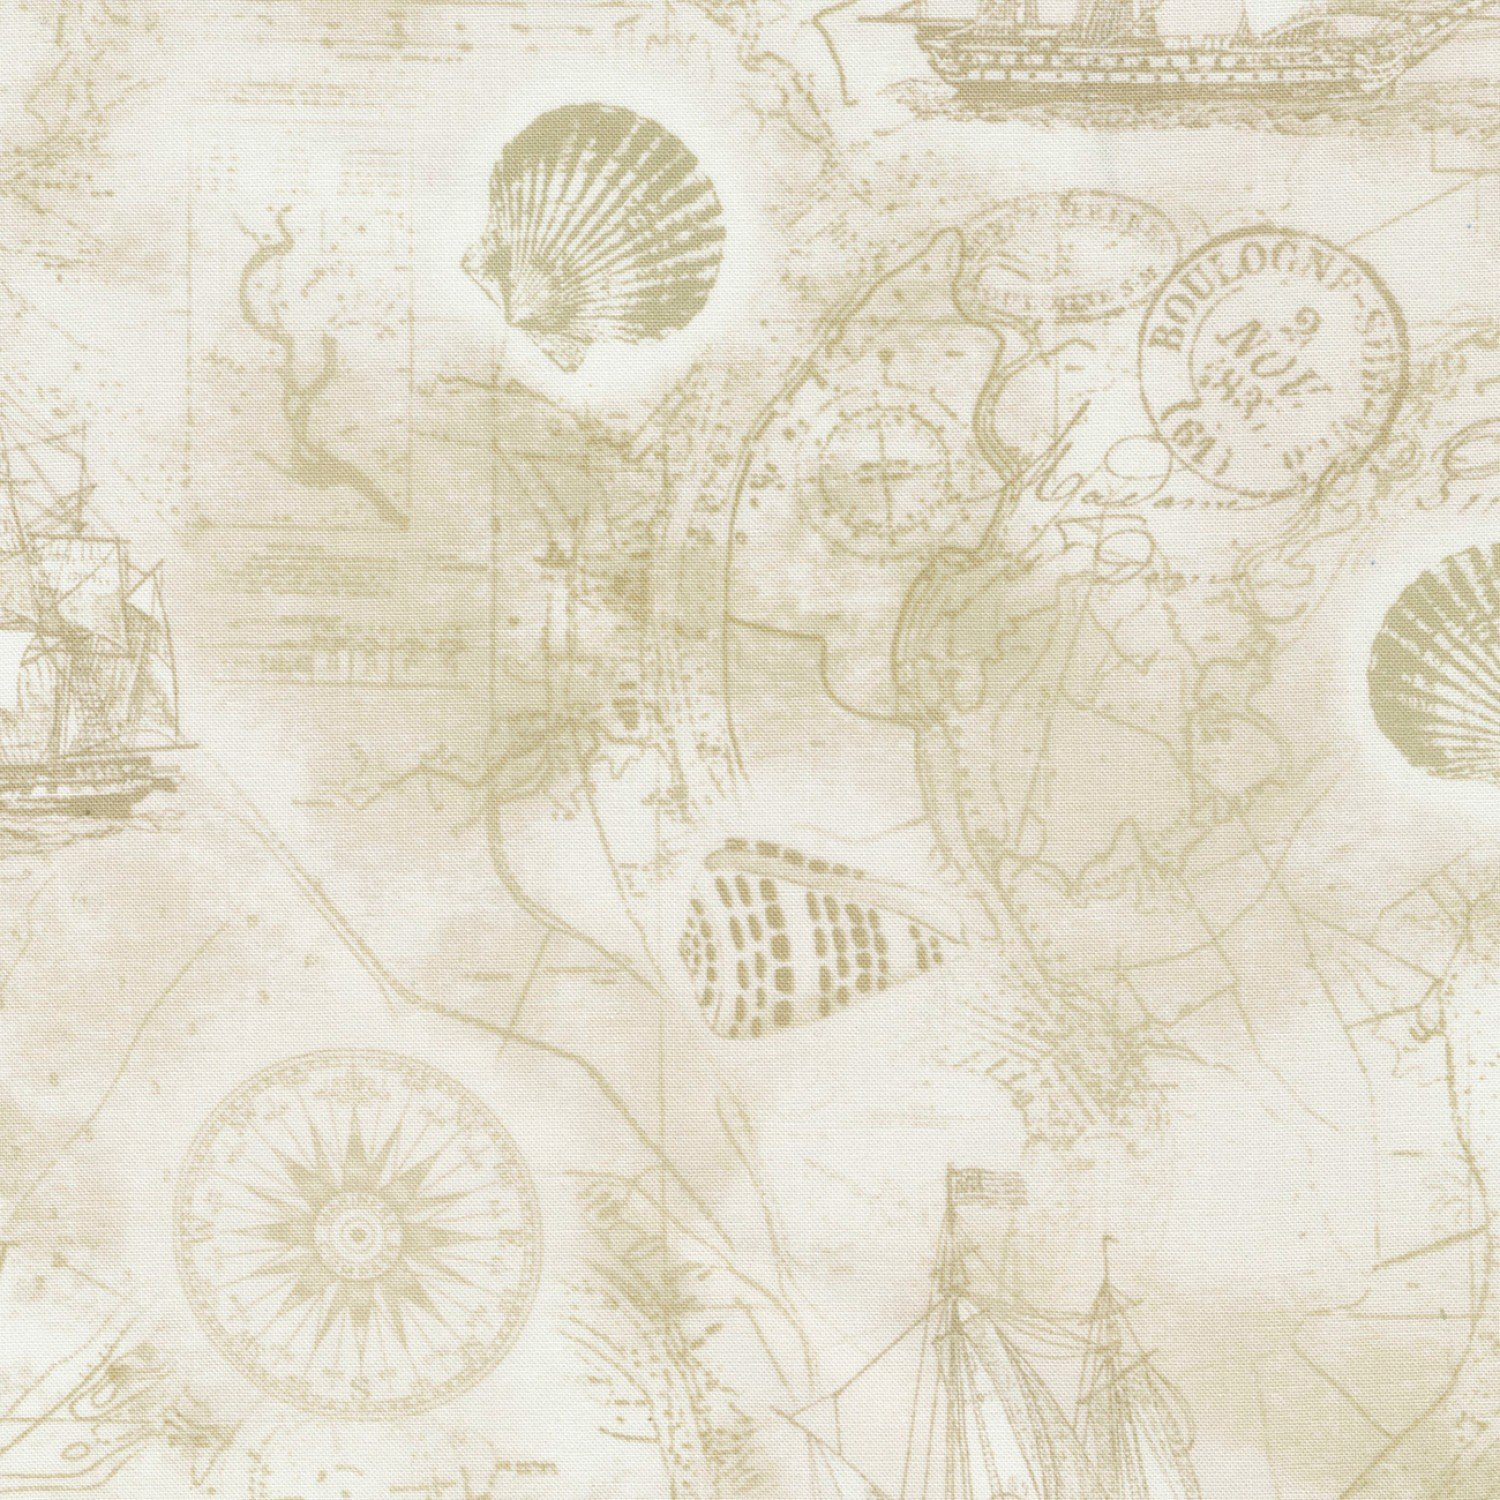 Nautical  Mile Map Beach-C6659 from Timeless Treasures